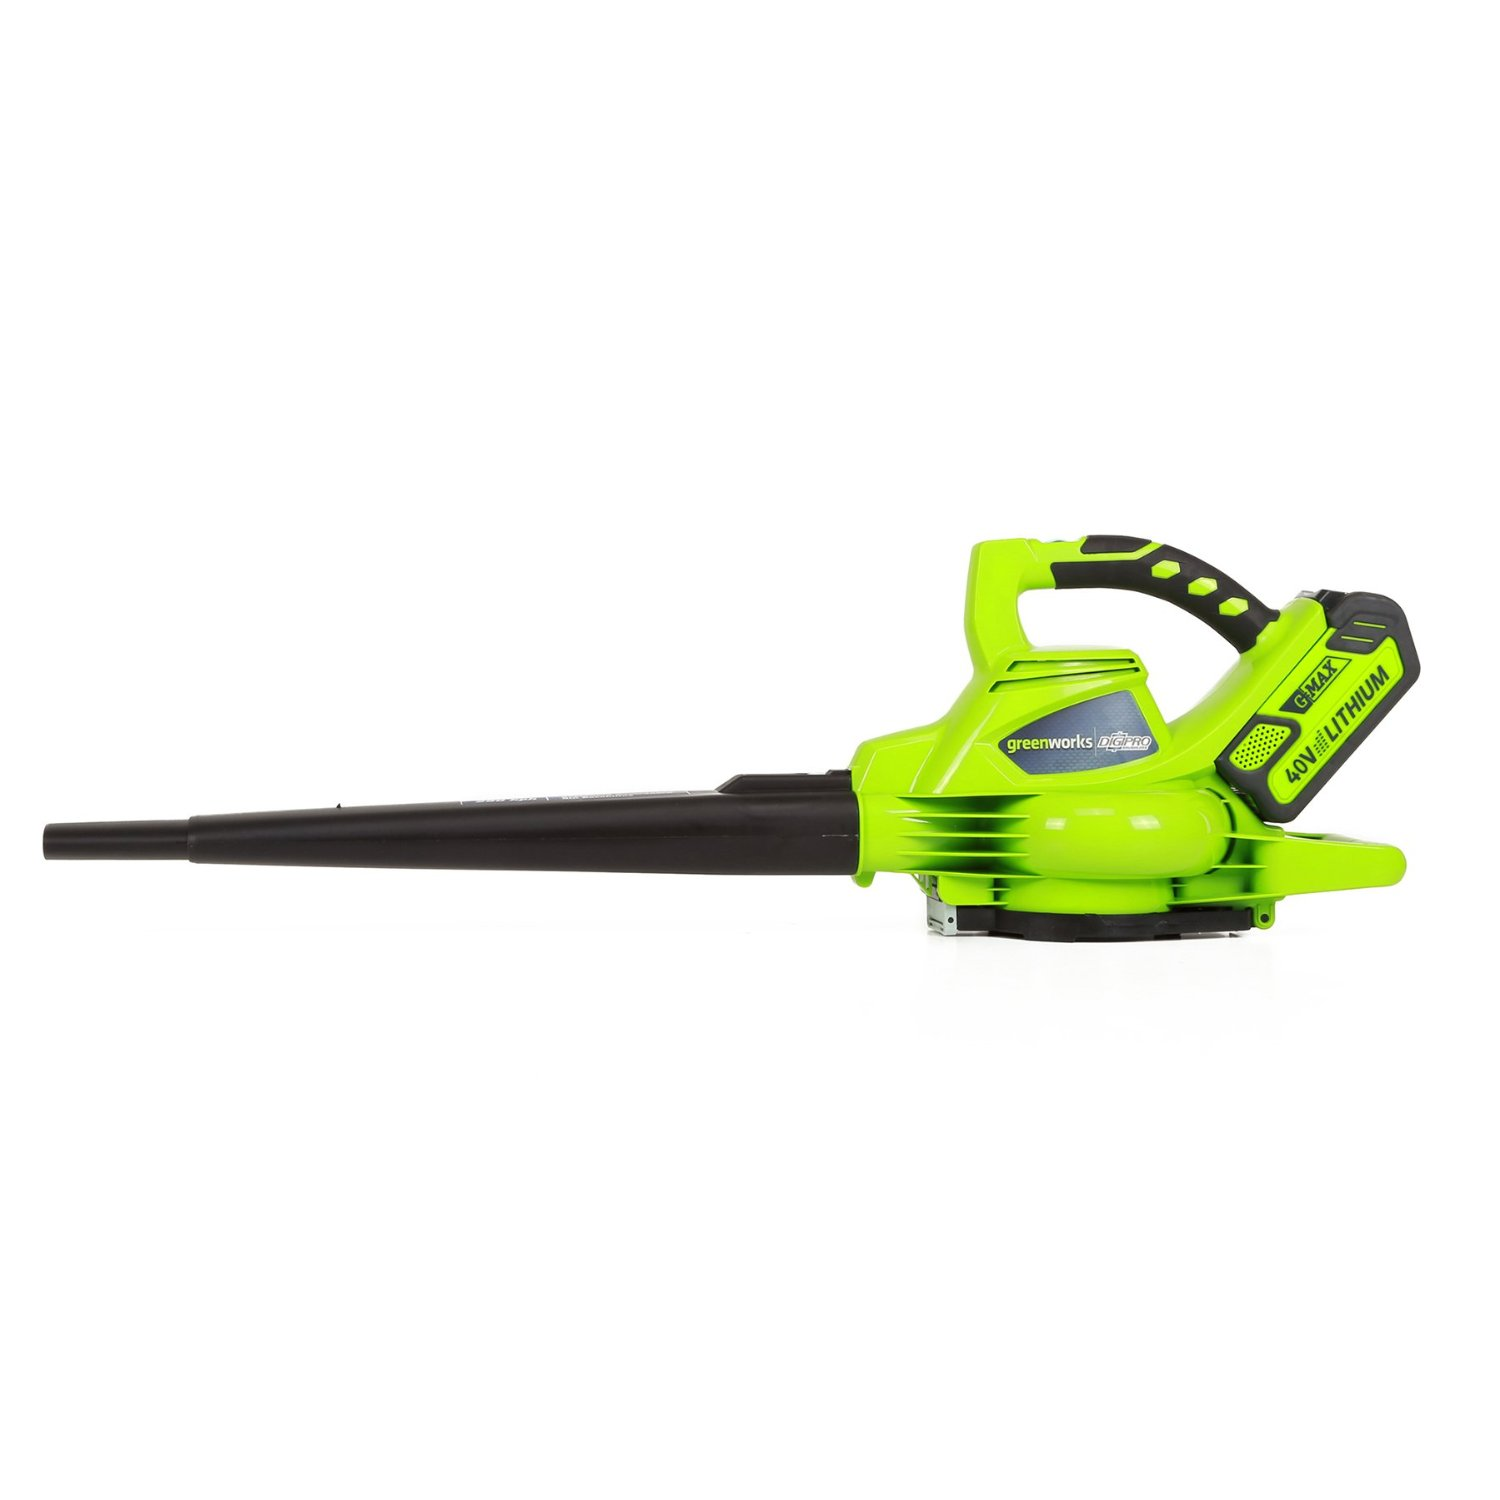 Best Leaf Blower Reviews of 2018 at TopProductscom